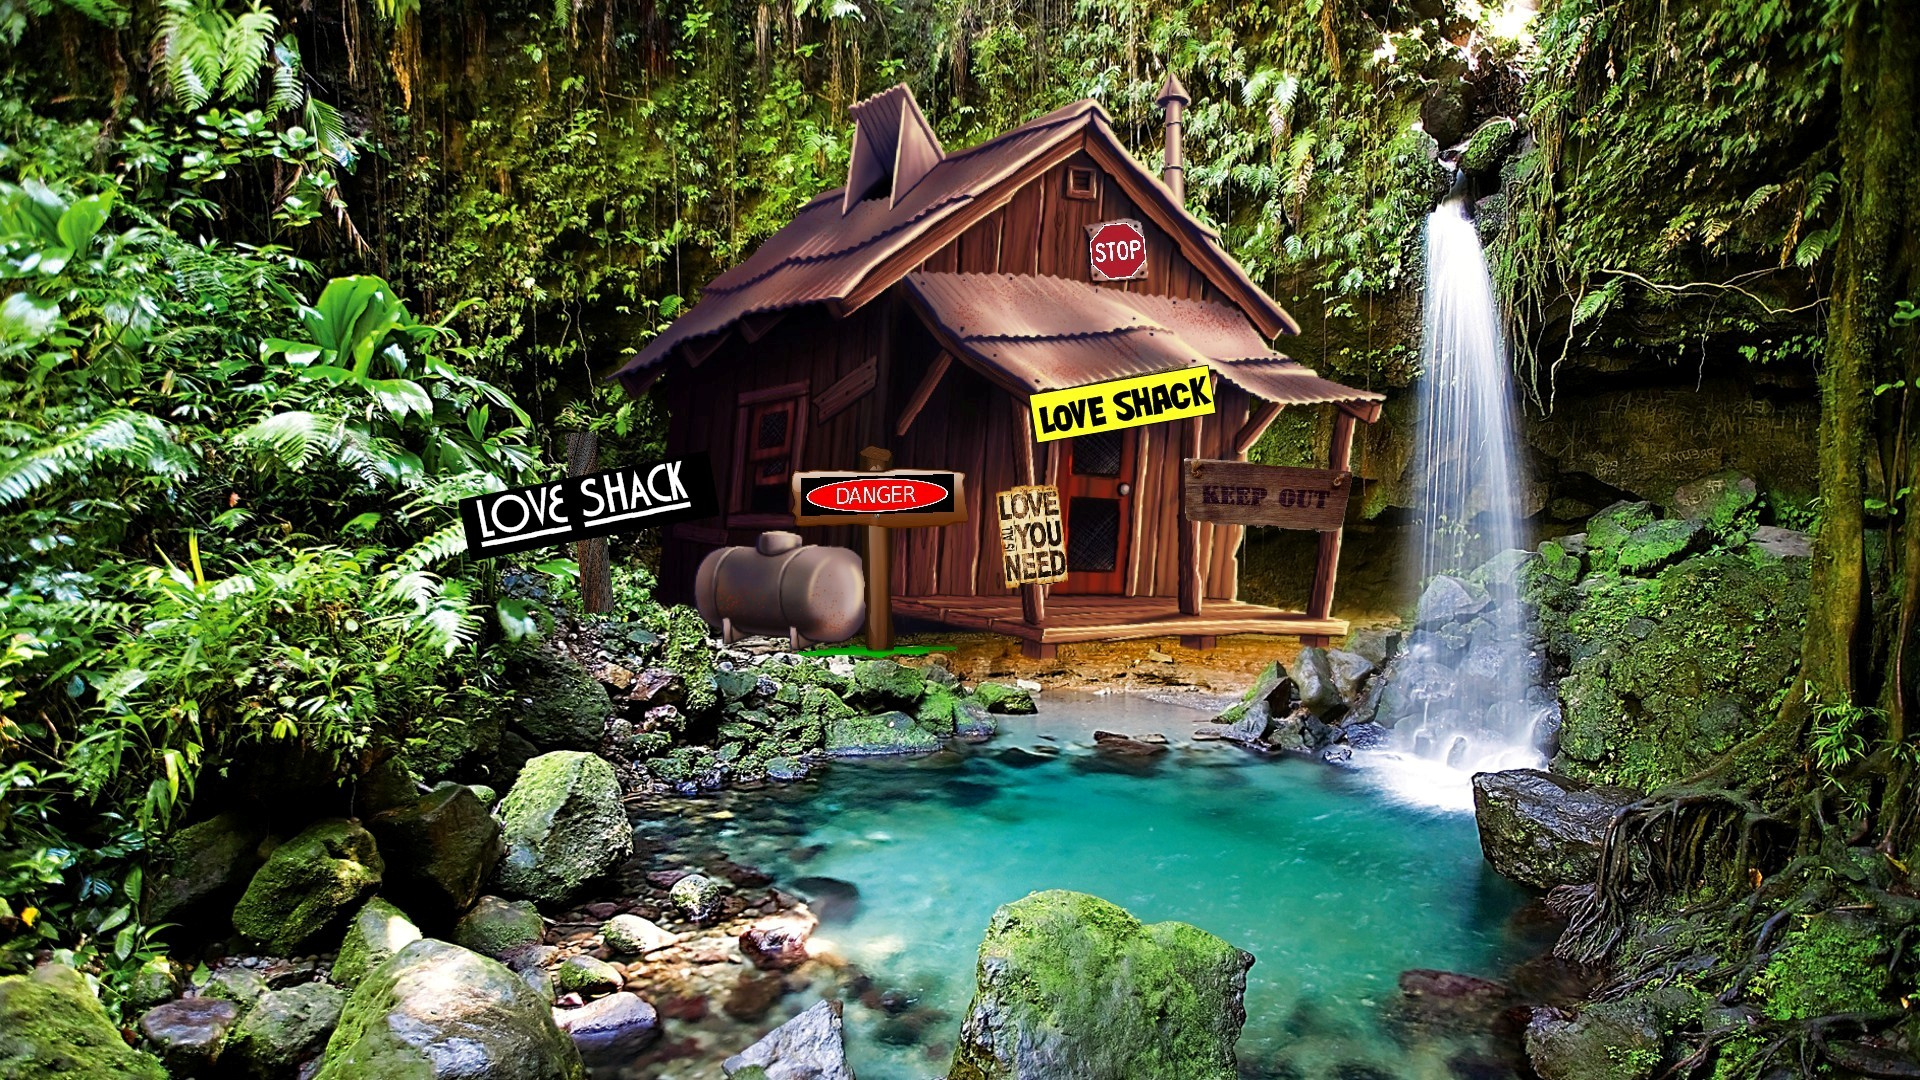 1920x1080 love shack desktop pc and mac wallpaper for The love shack cabin